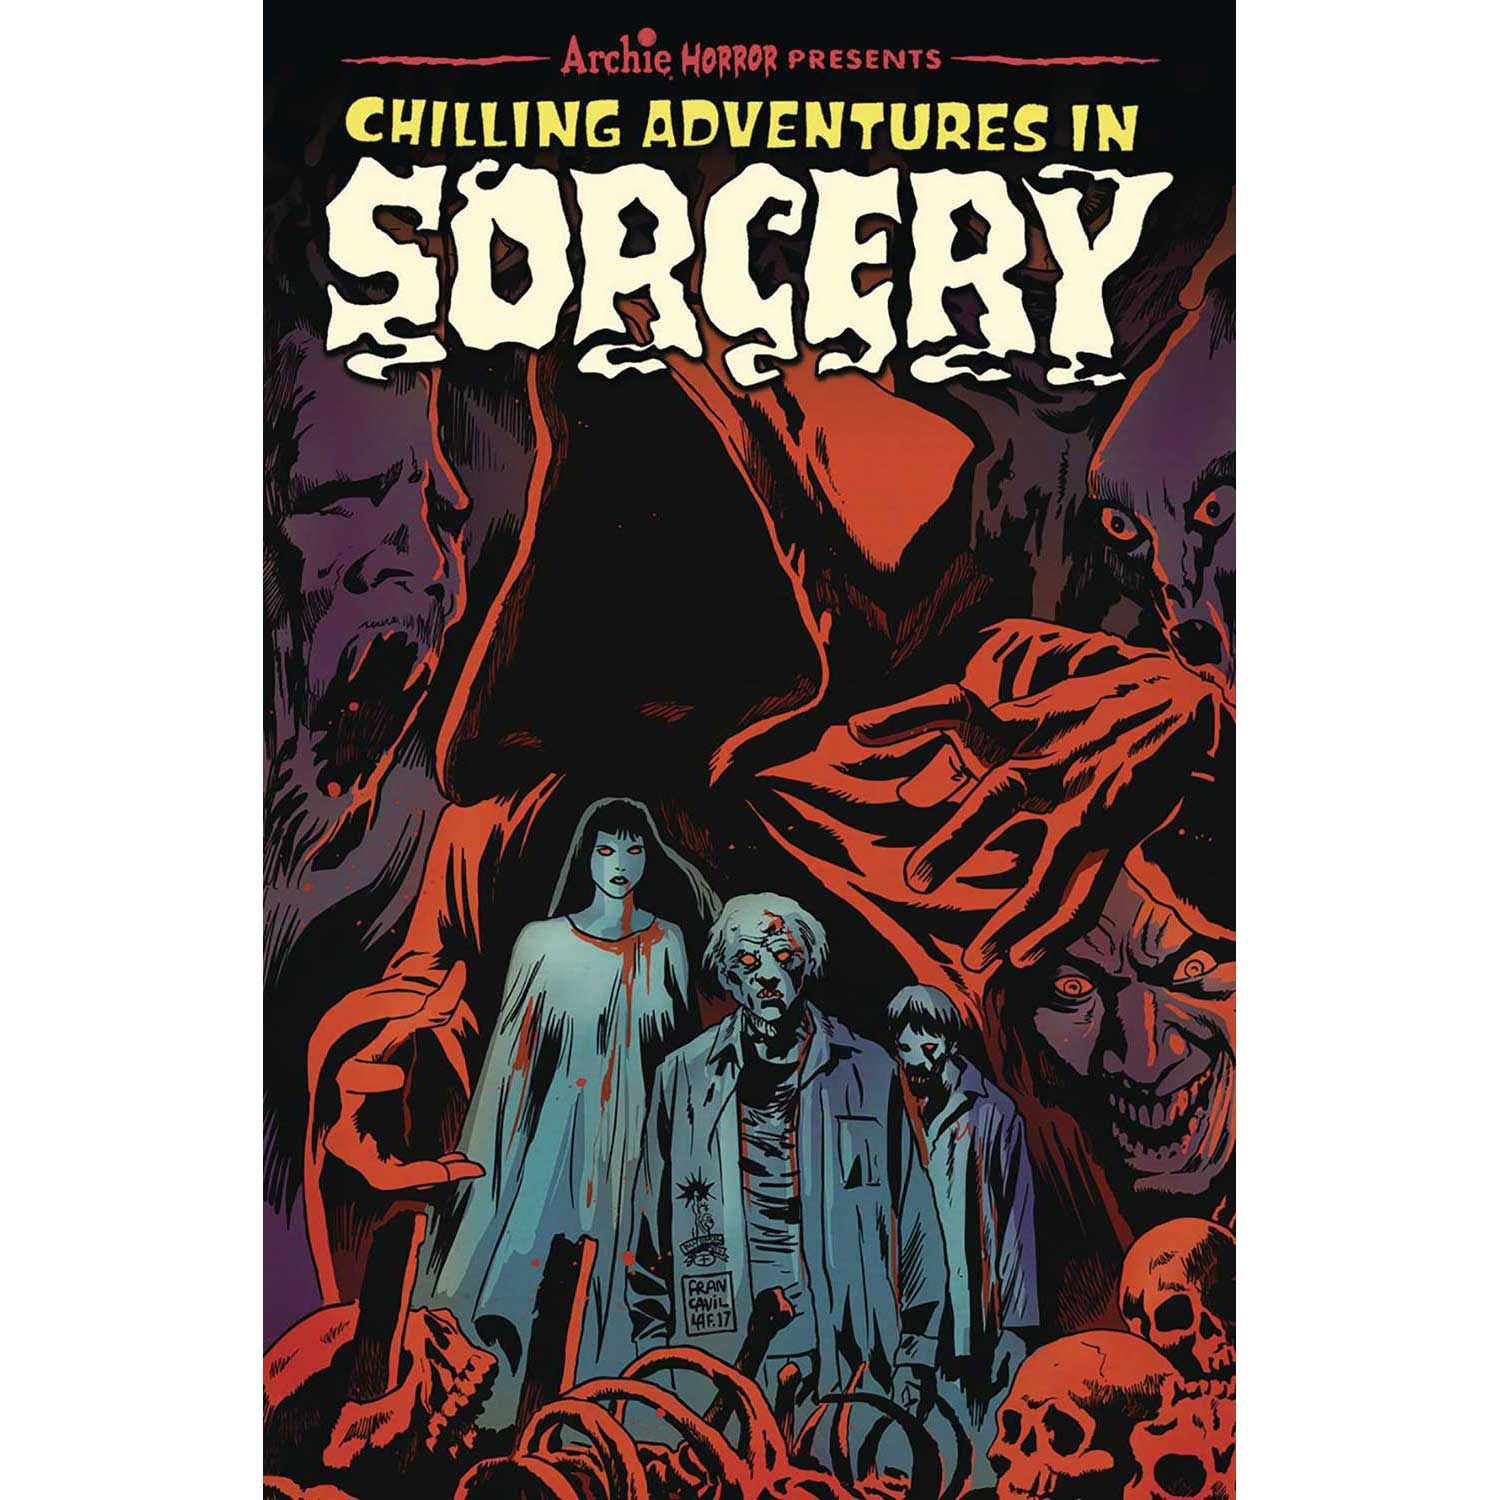 Chilling Adventures Of Sorcery